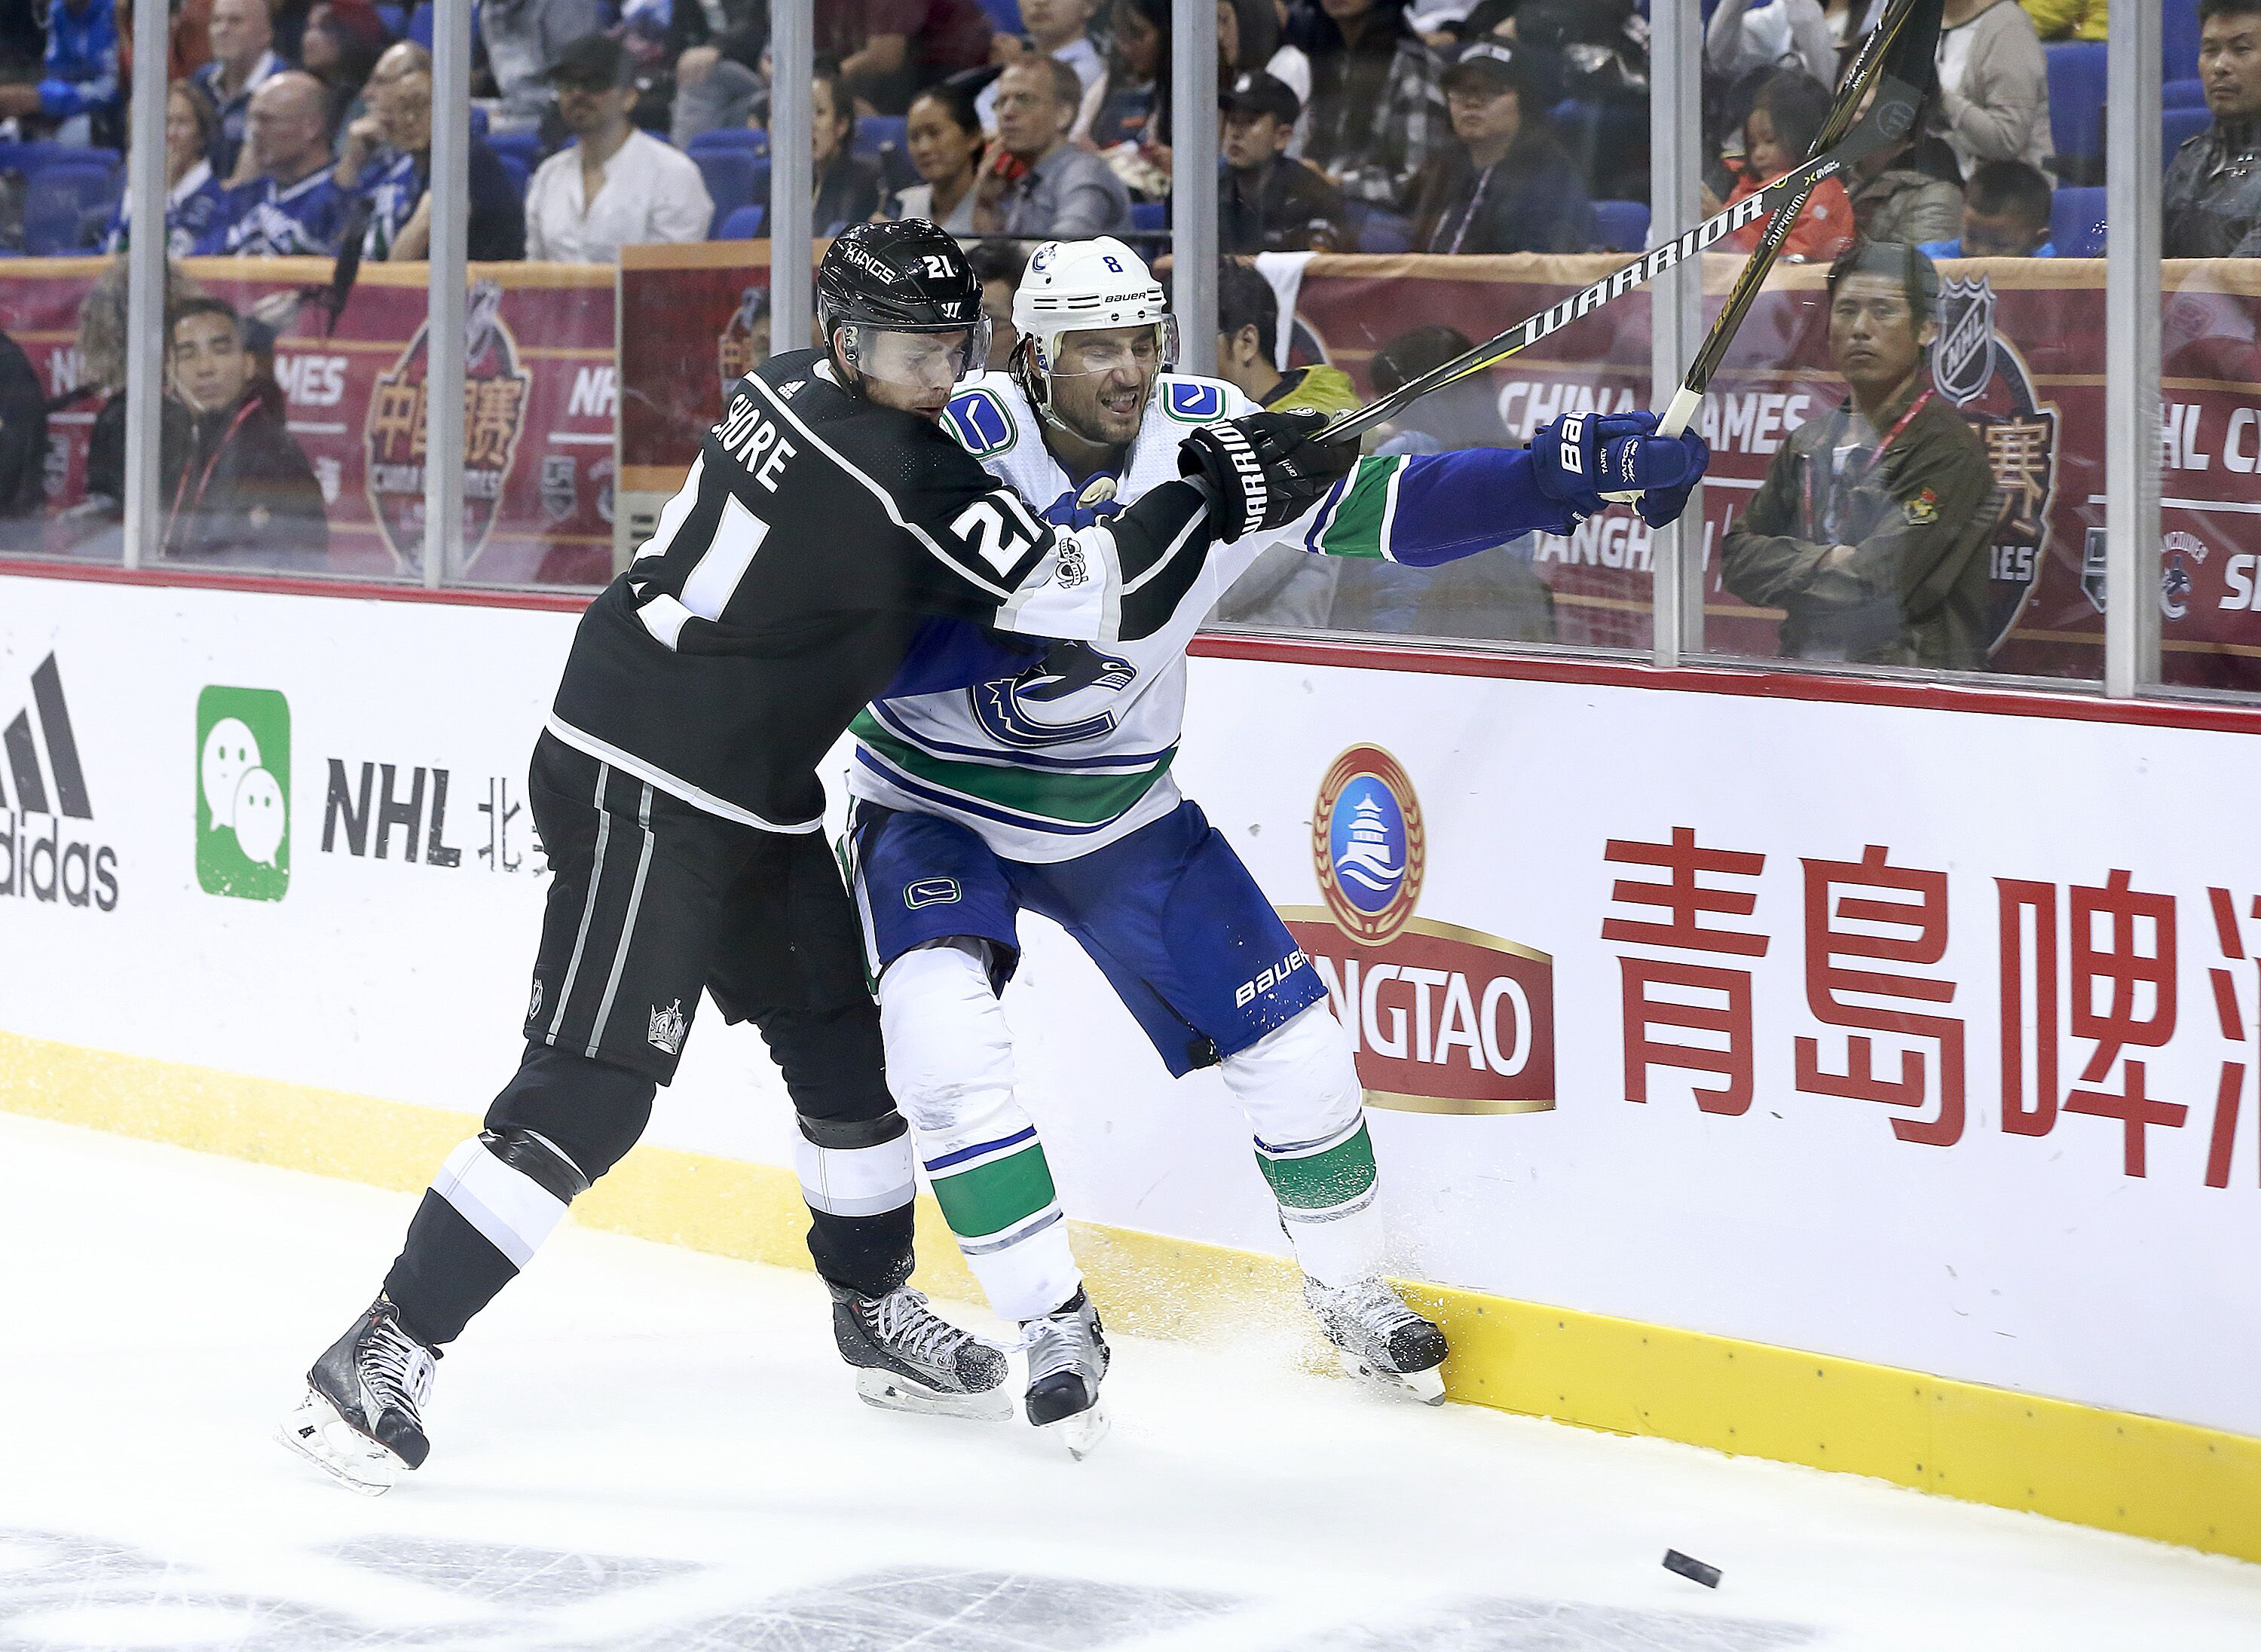 850732634-2017-nhl-china-games-los-angeles-kings-v-vancouver-canucks-pre-season.jpg